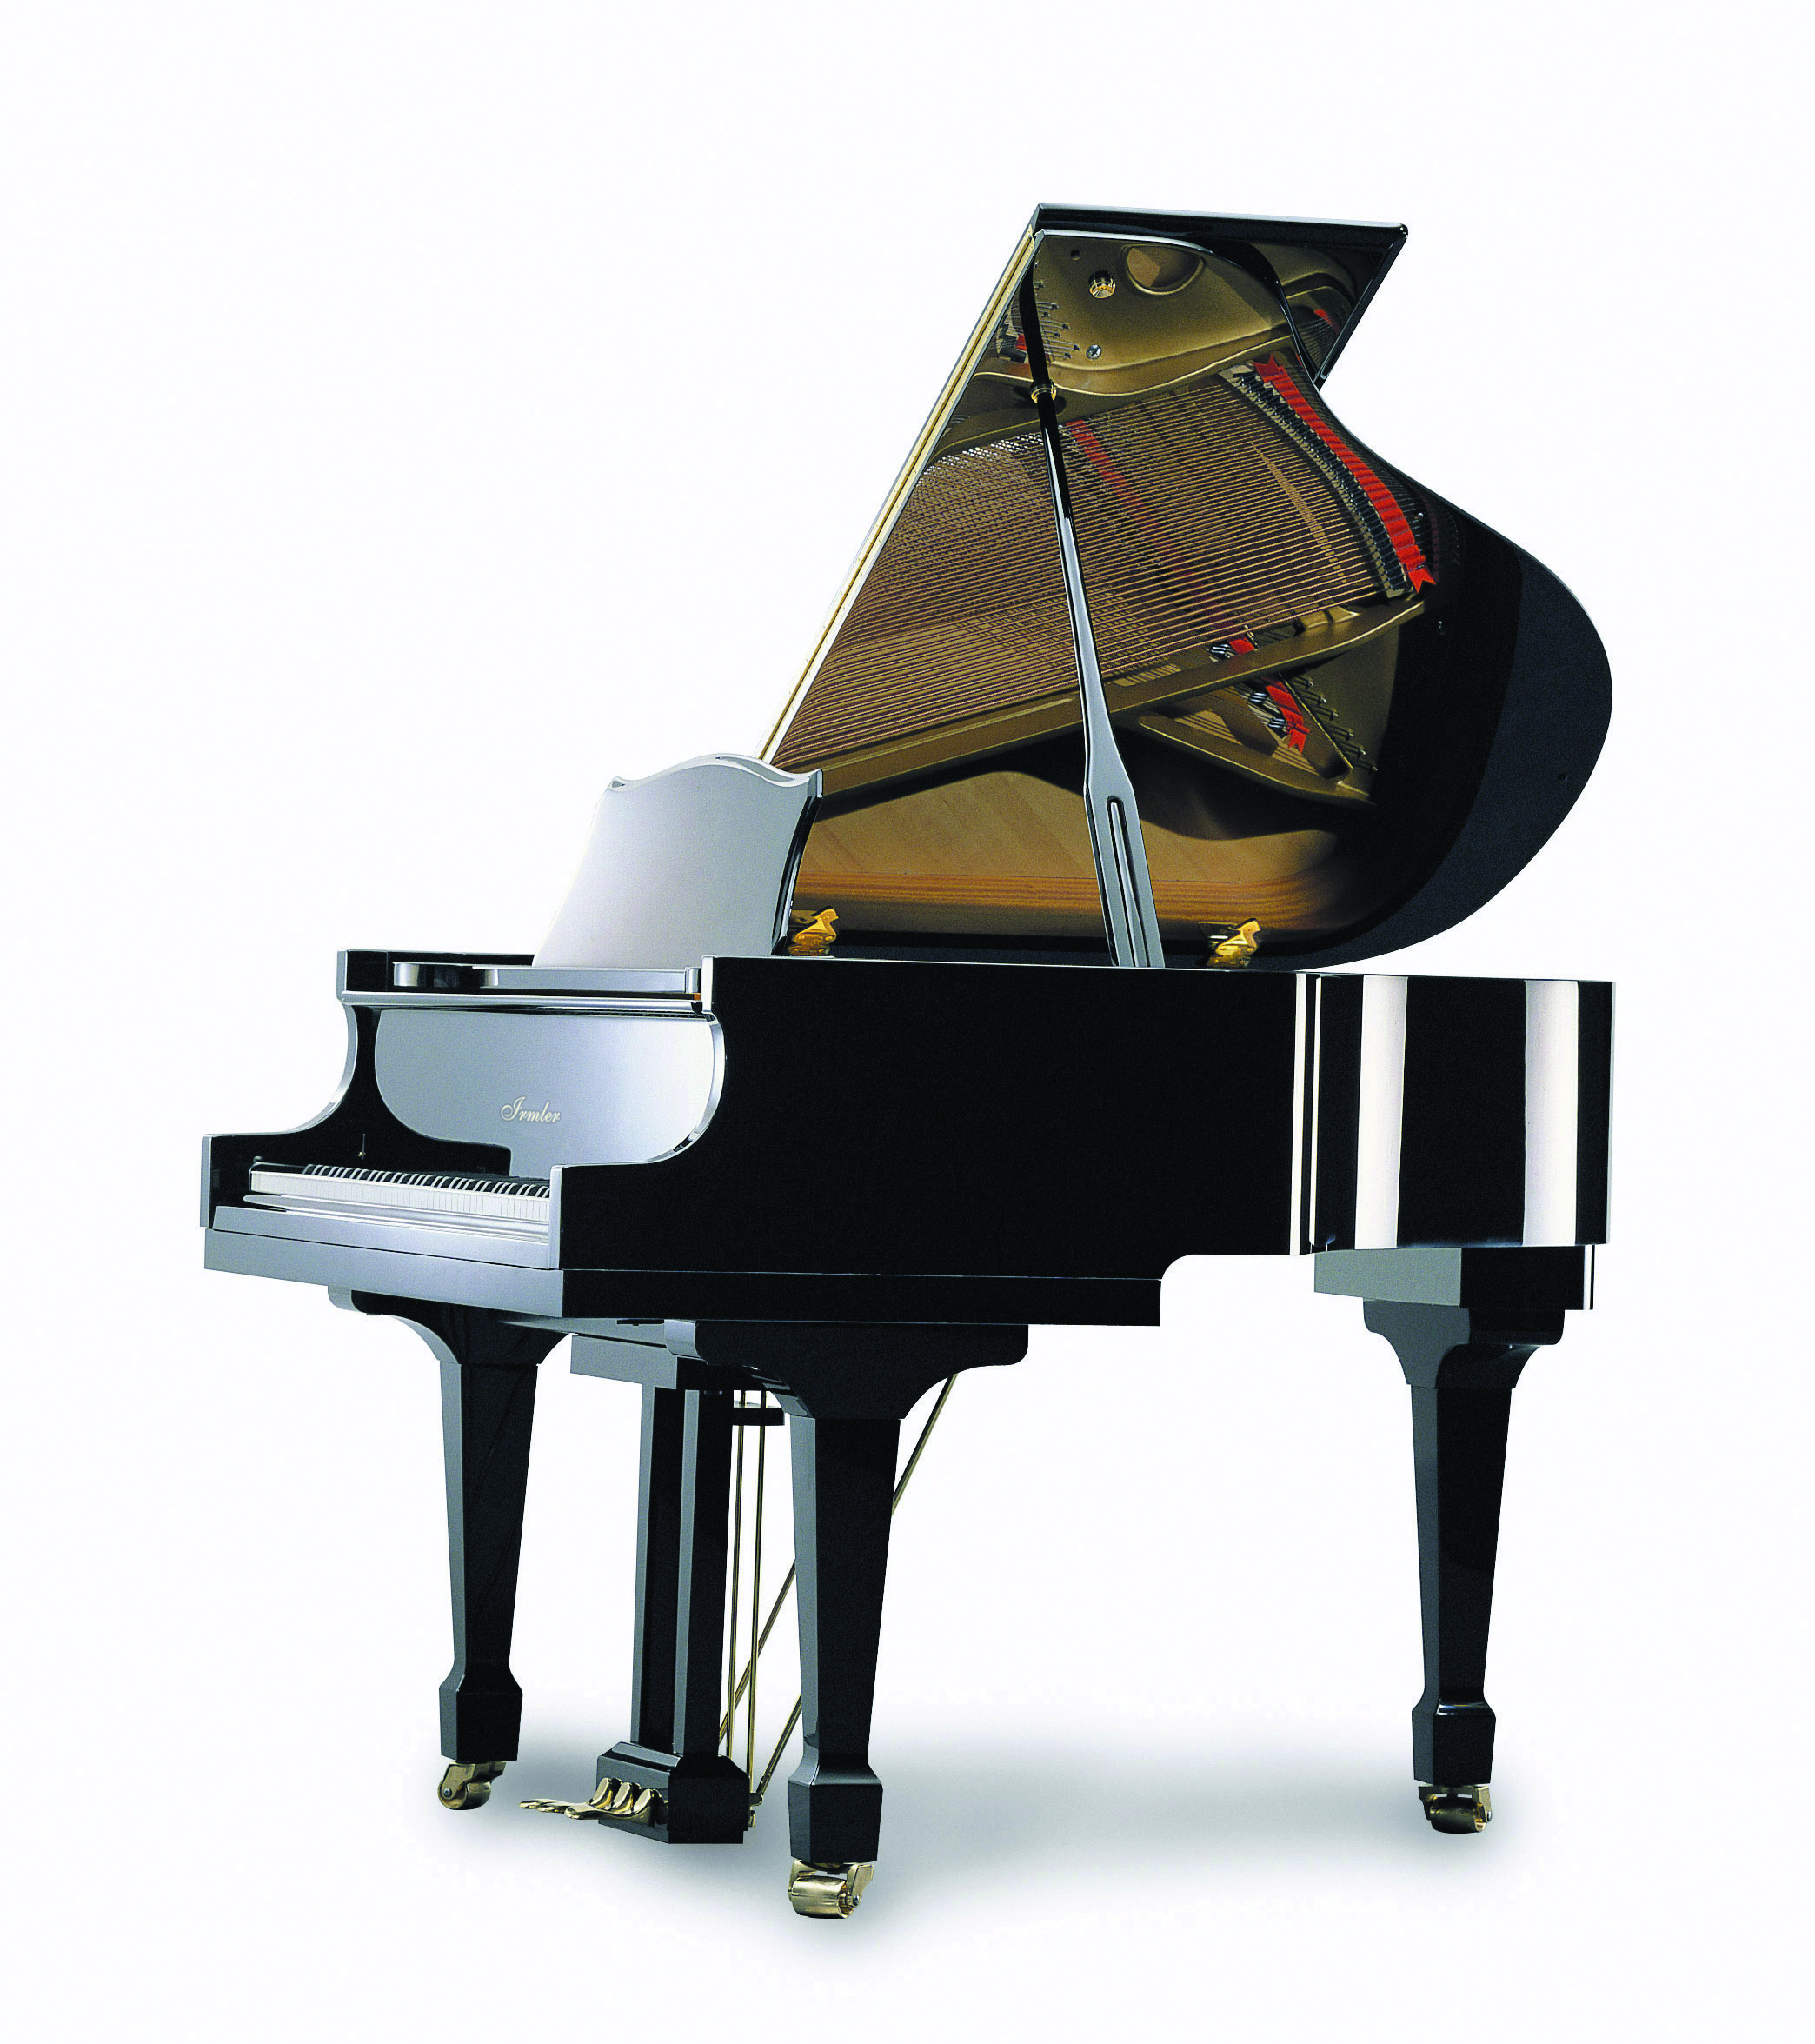 Irmler F 160 E Europe Grand Piano